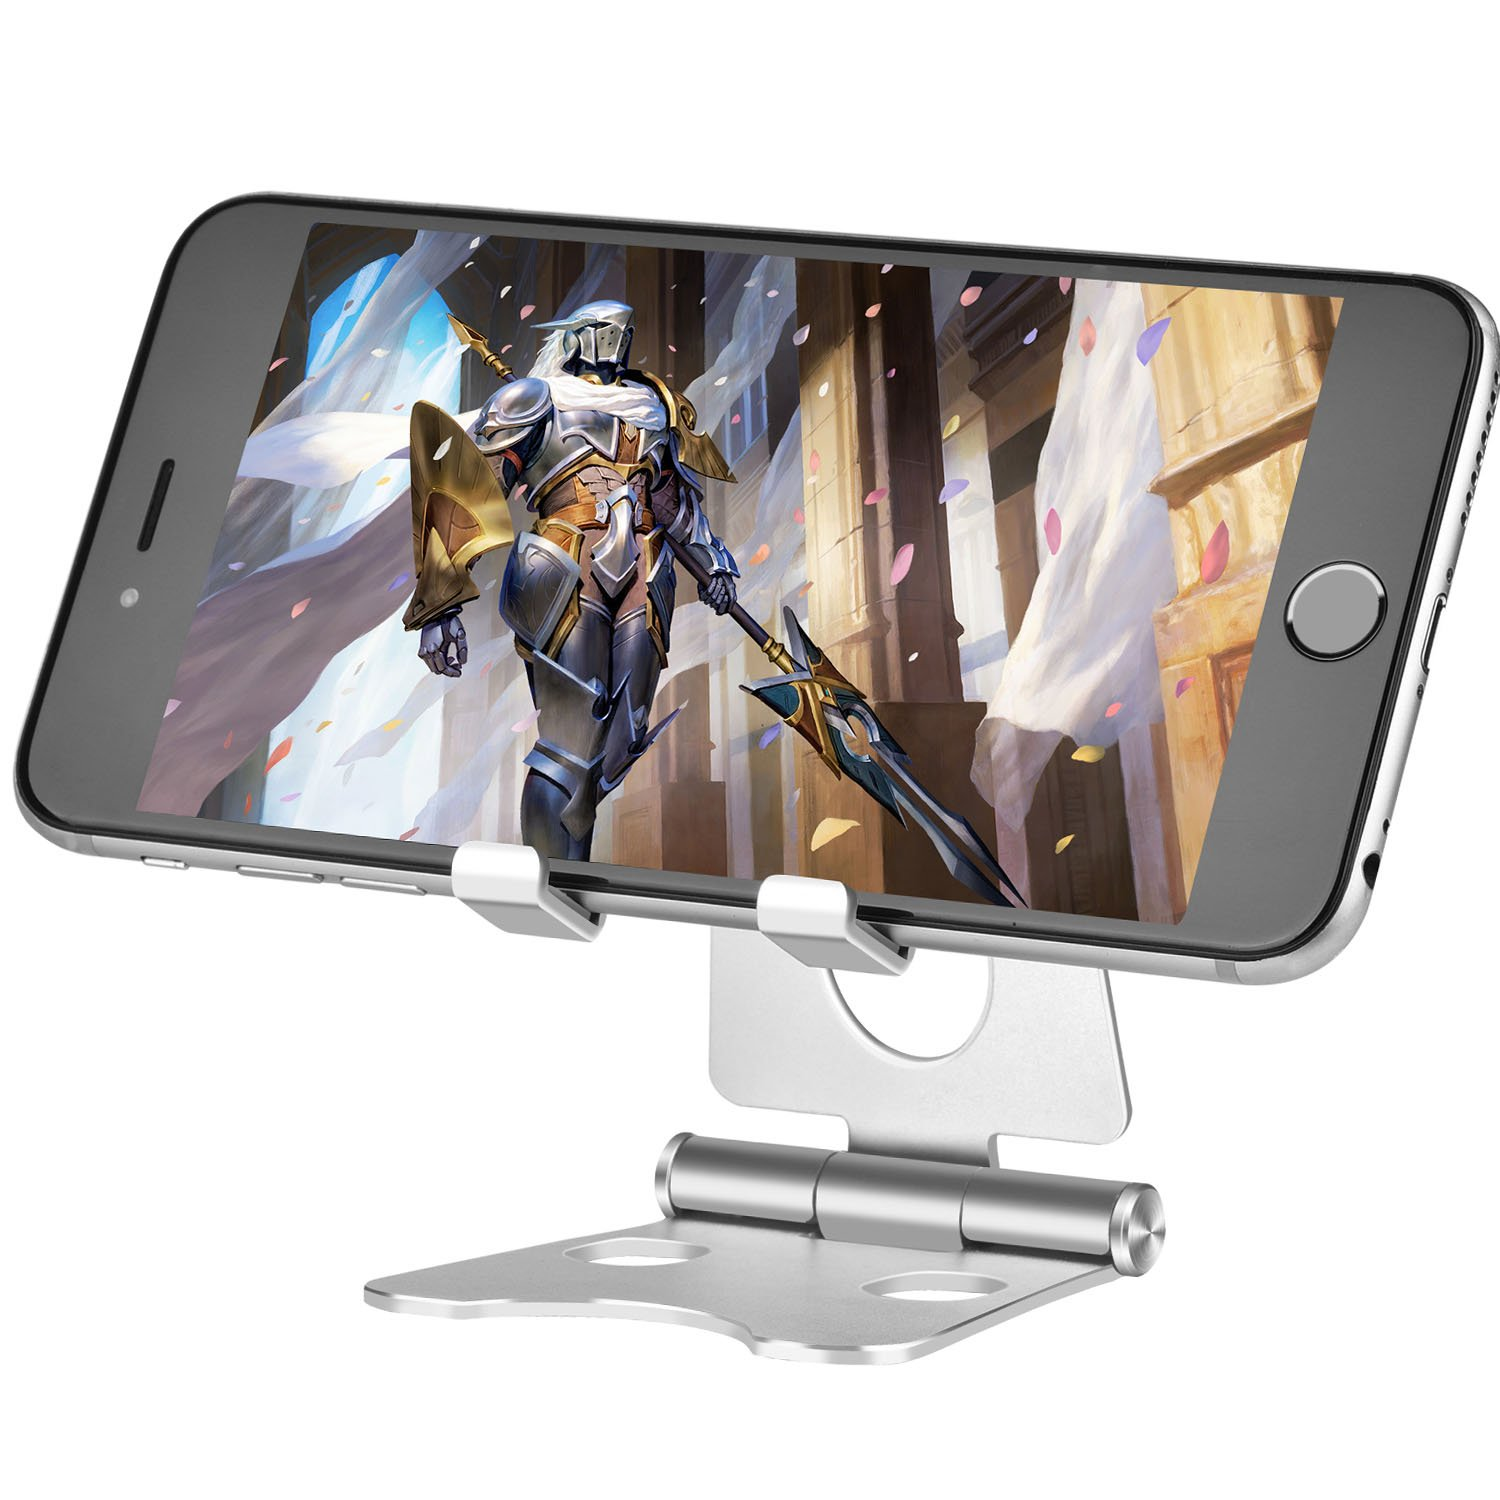 Cell Phone Stand Portable Tablet Stand for iPhone Android Smartphones iPad Tablet and Nintendo Switch Adjustable and Foldable Design(Silver)